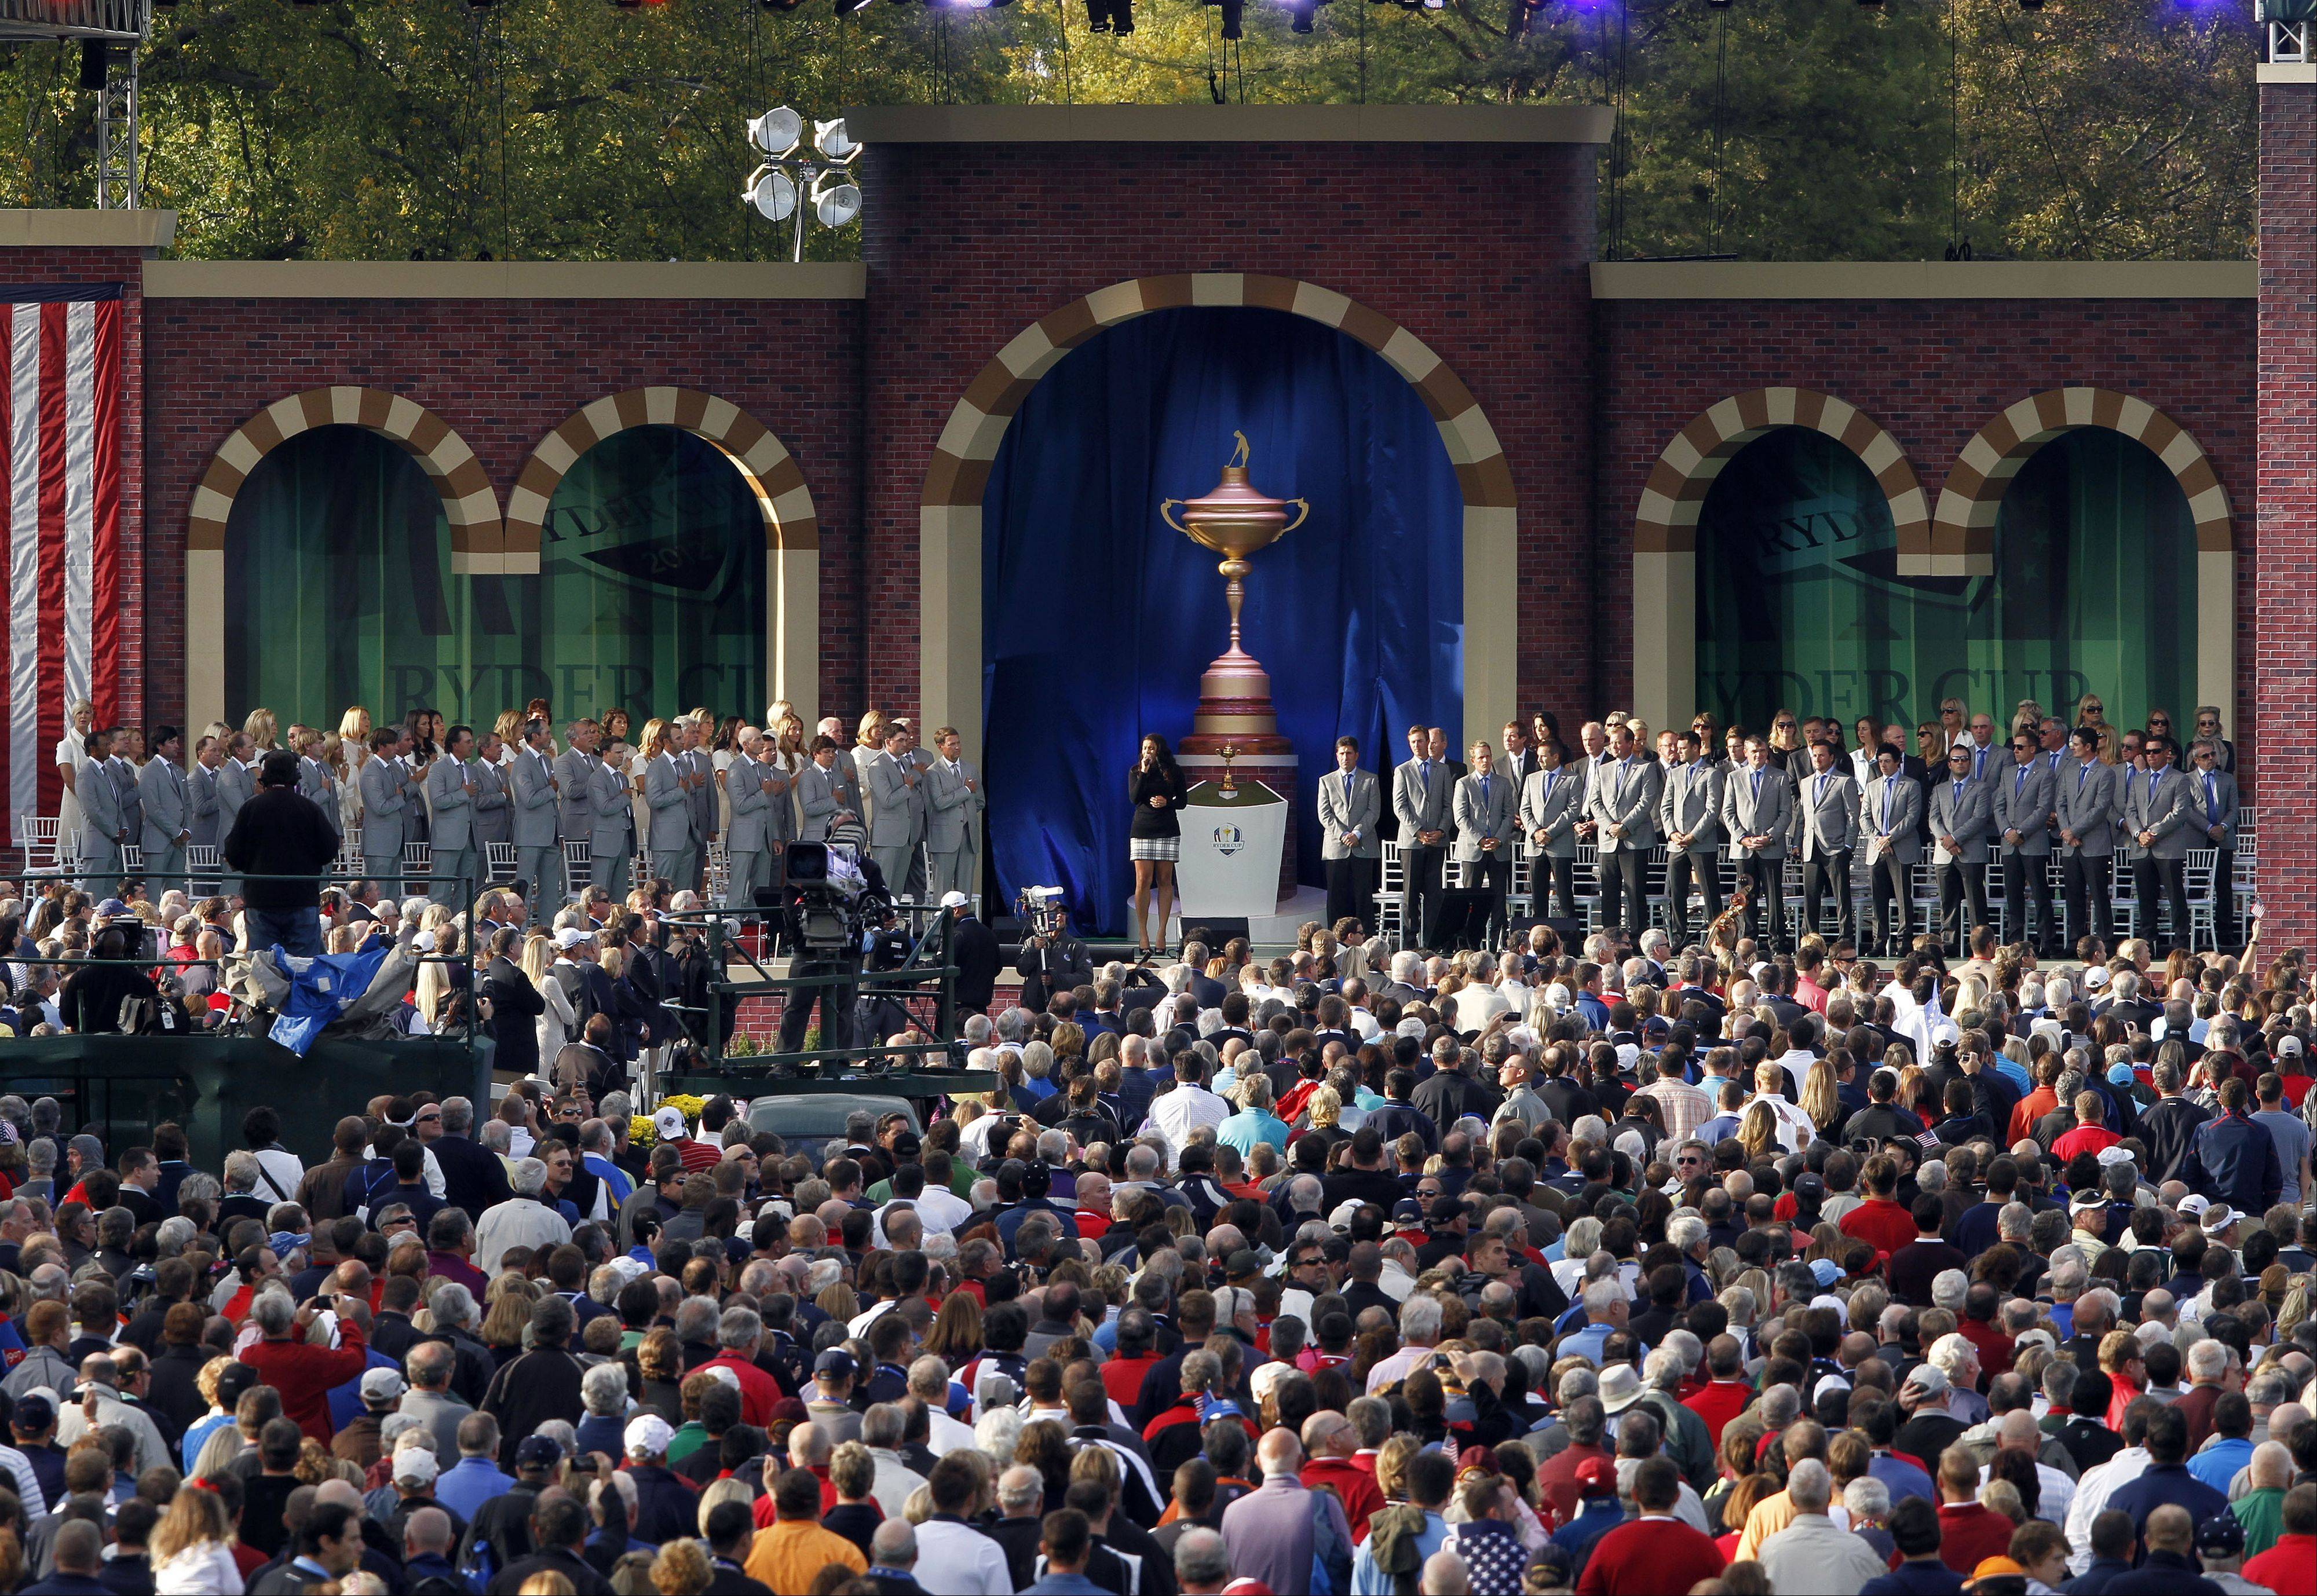 The United States, left, and European teams rise as singing artist Jordin Sparks sings the national anthem as part of the 39th Ryder Cup opening ceremonies yesterday at Medinah Country Club.